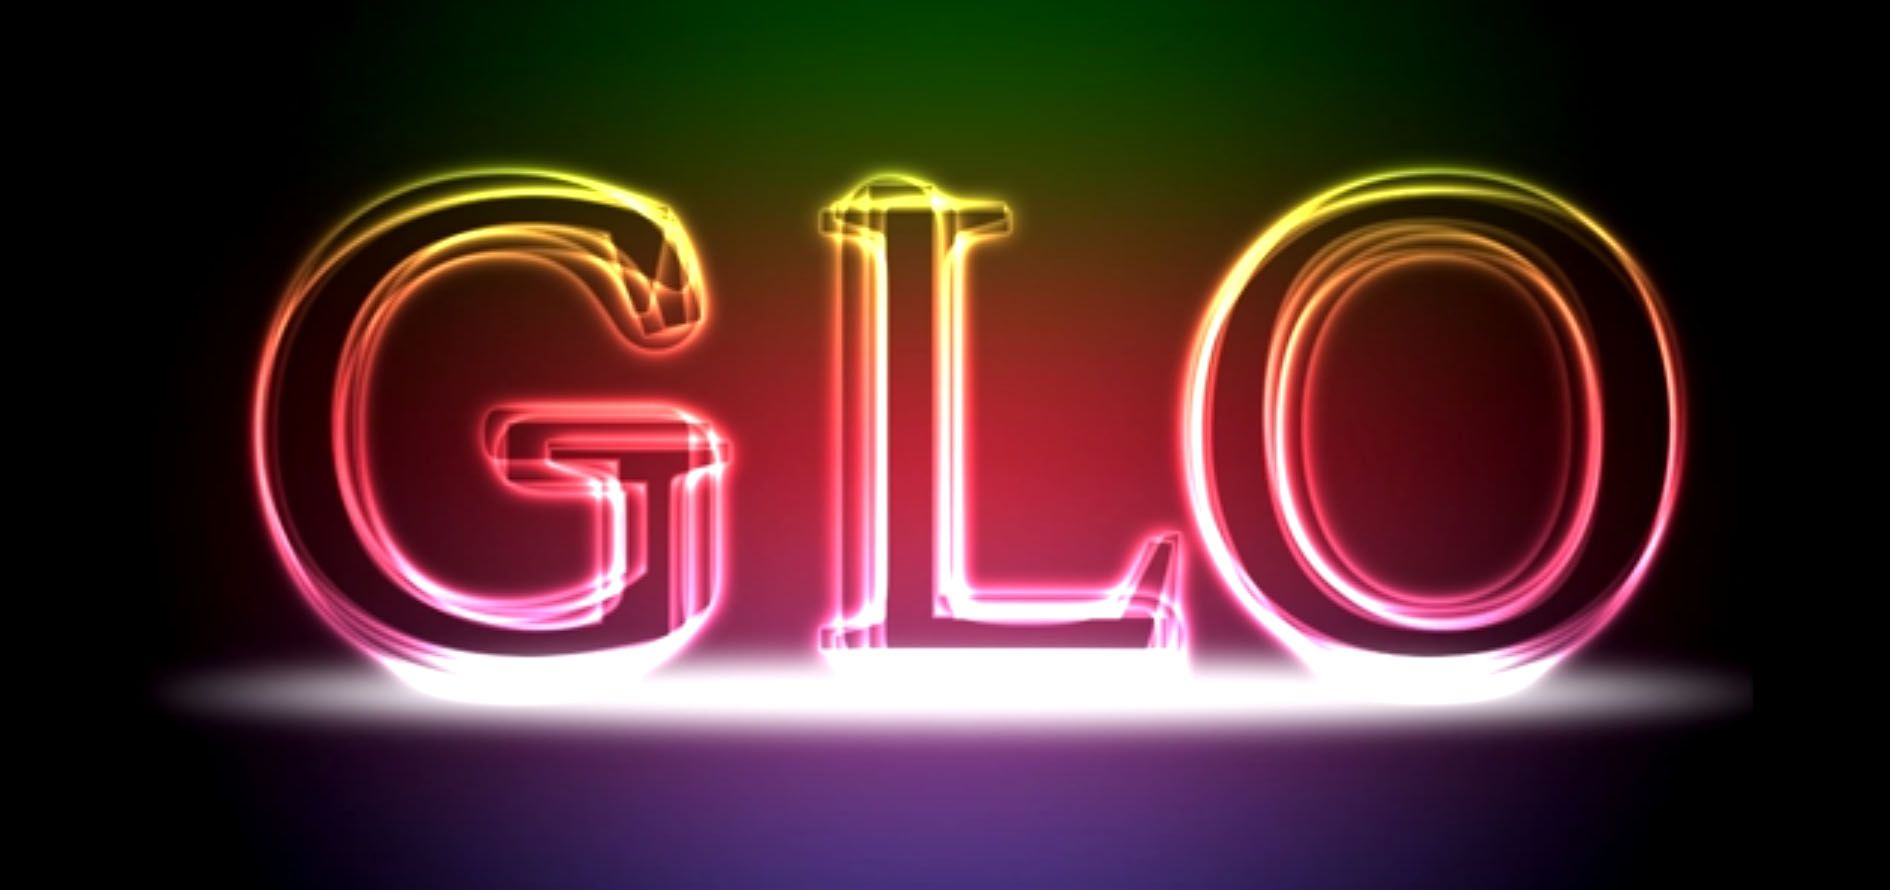 Create a glowing text effect photoshop tutorial photoshop create a glowing text effect photoshop tutorial baditri Choice Image